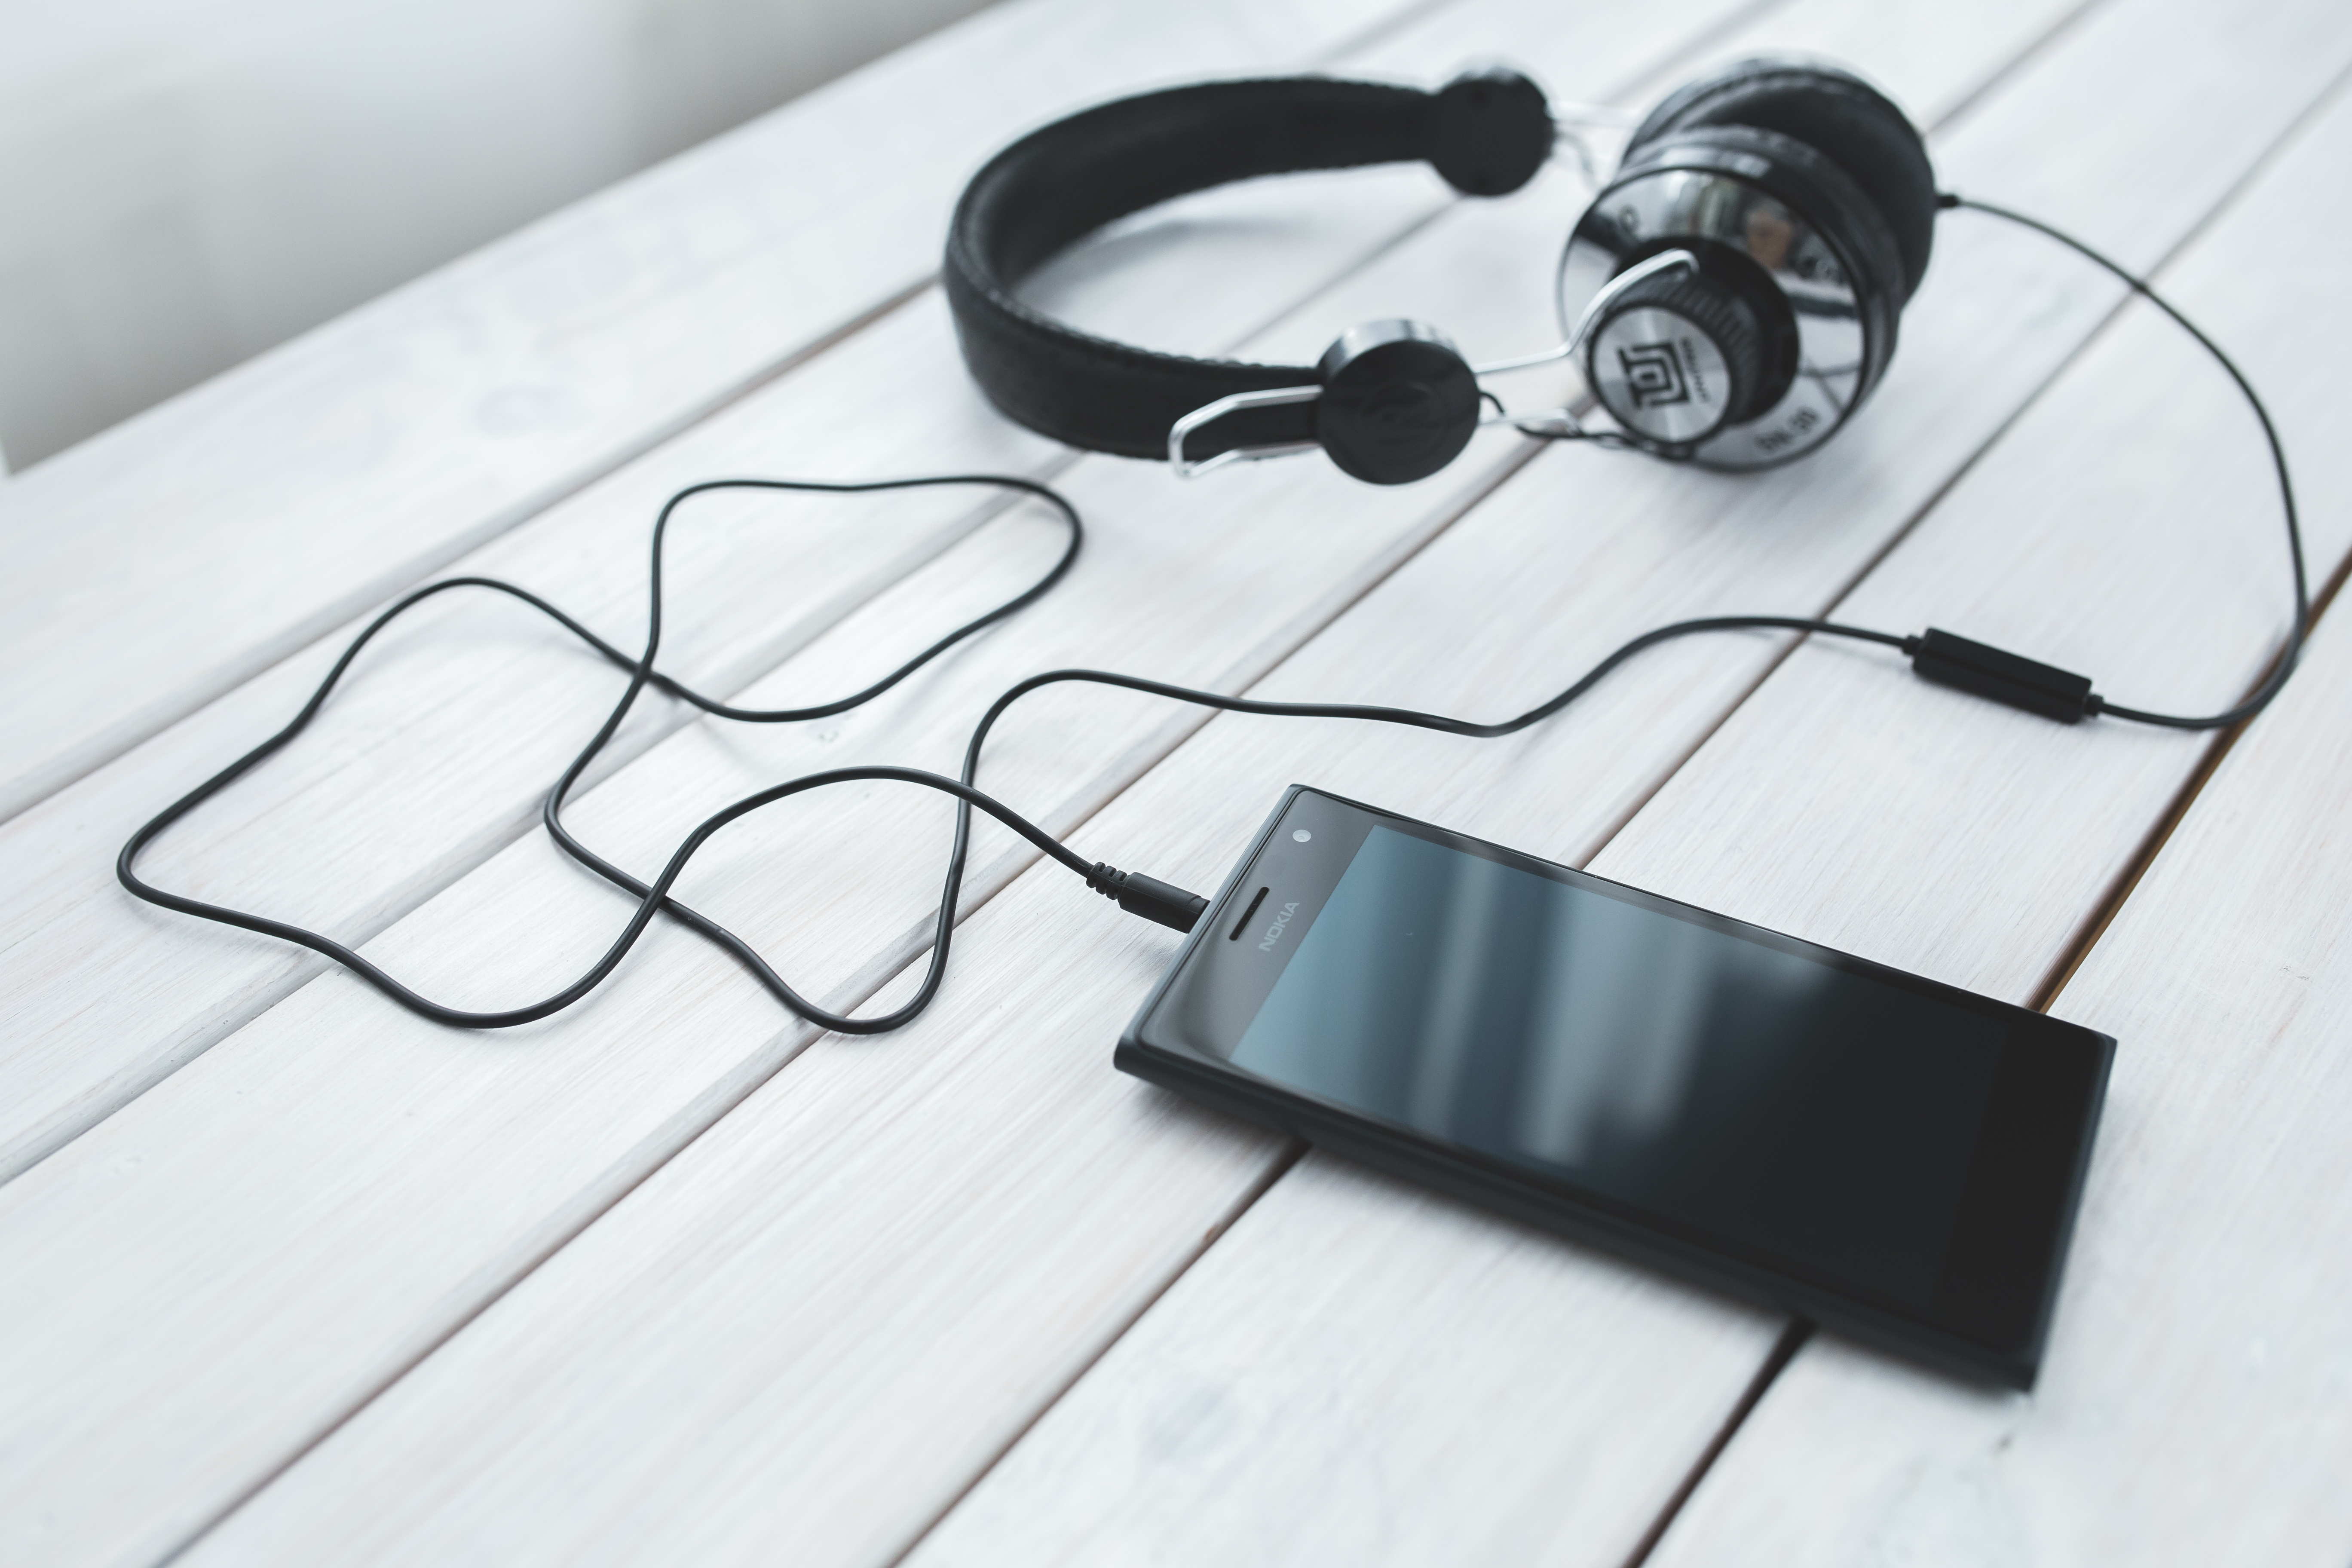 Black smartphone and headphones on a desk · Free Stock Photo